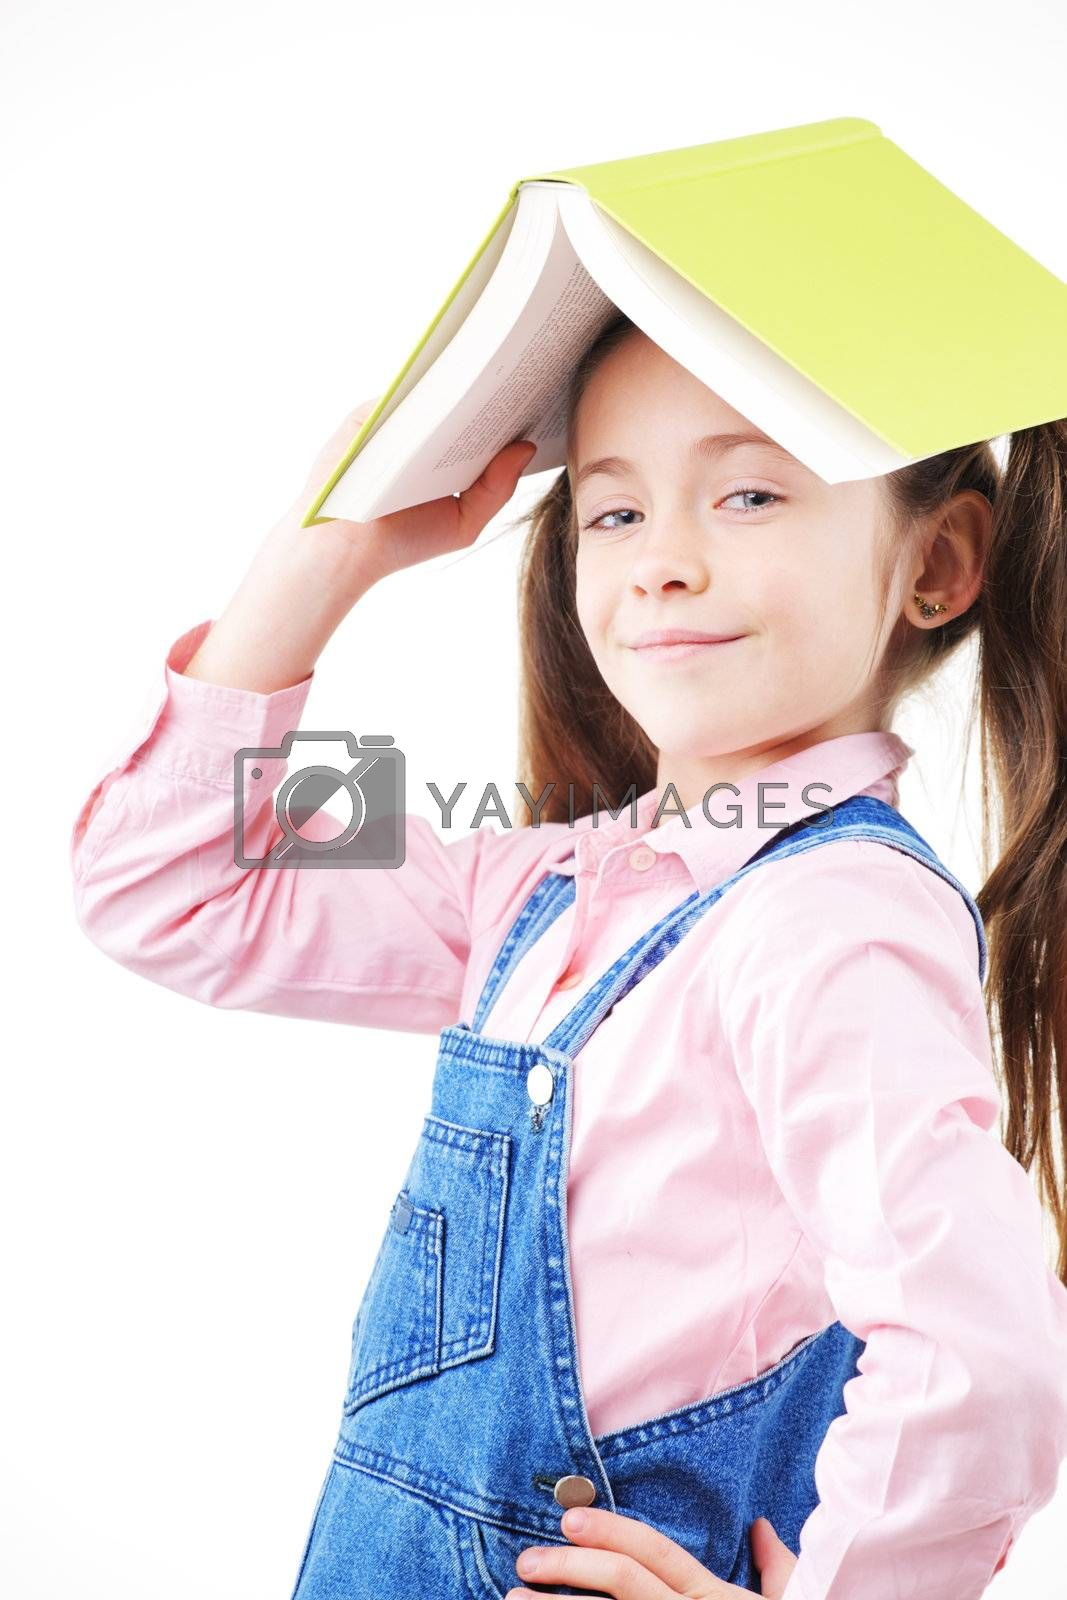 Cute girl with book on white background